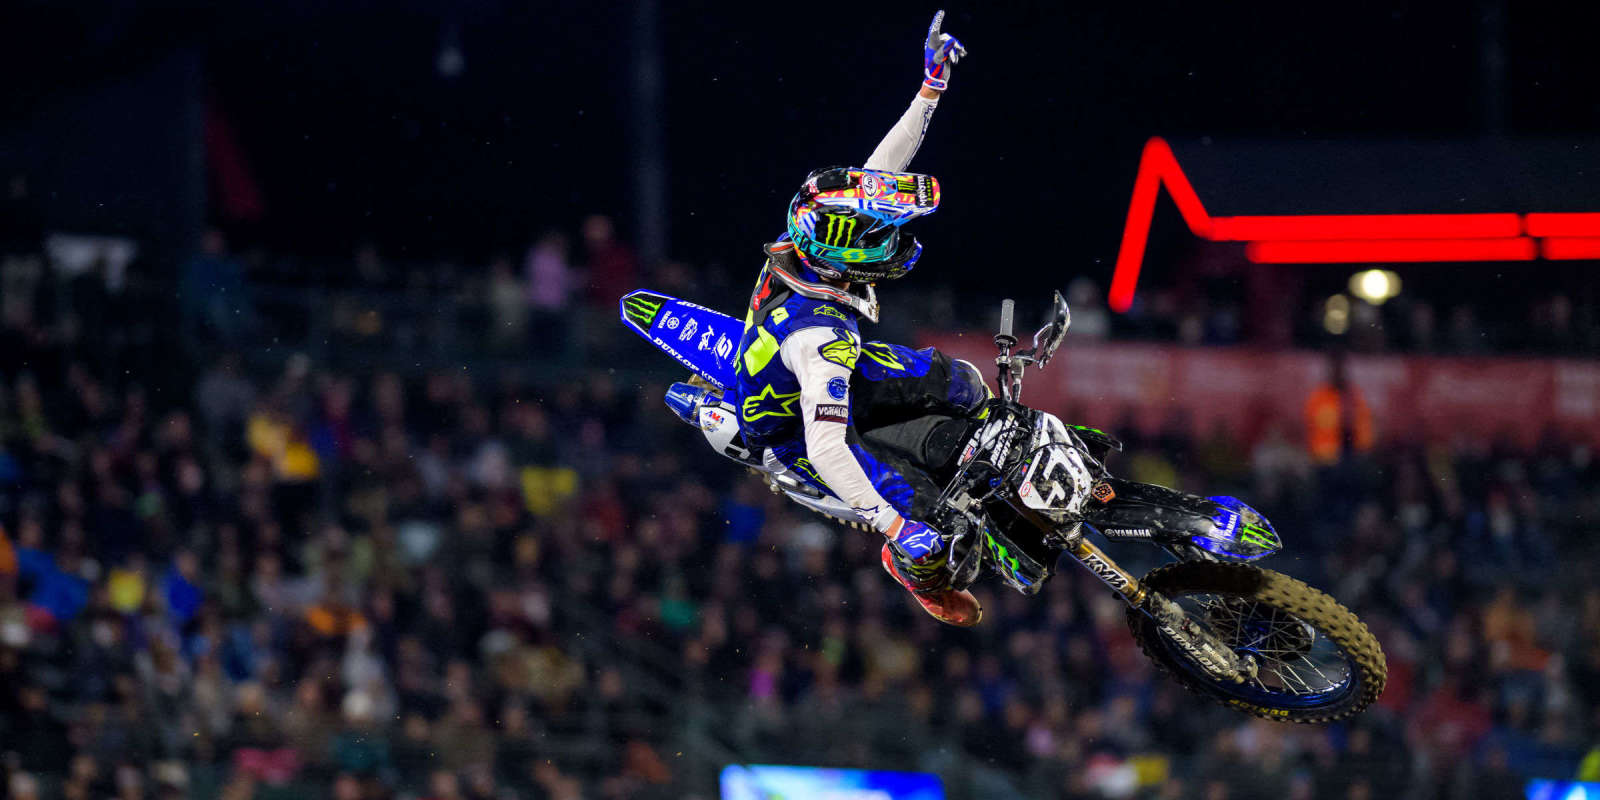 Justin Barcia at the first stop in Anaheim of the 2019 Supercross season